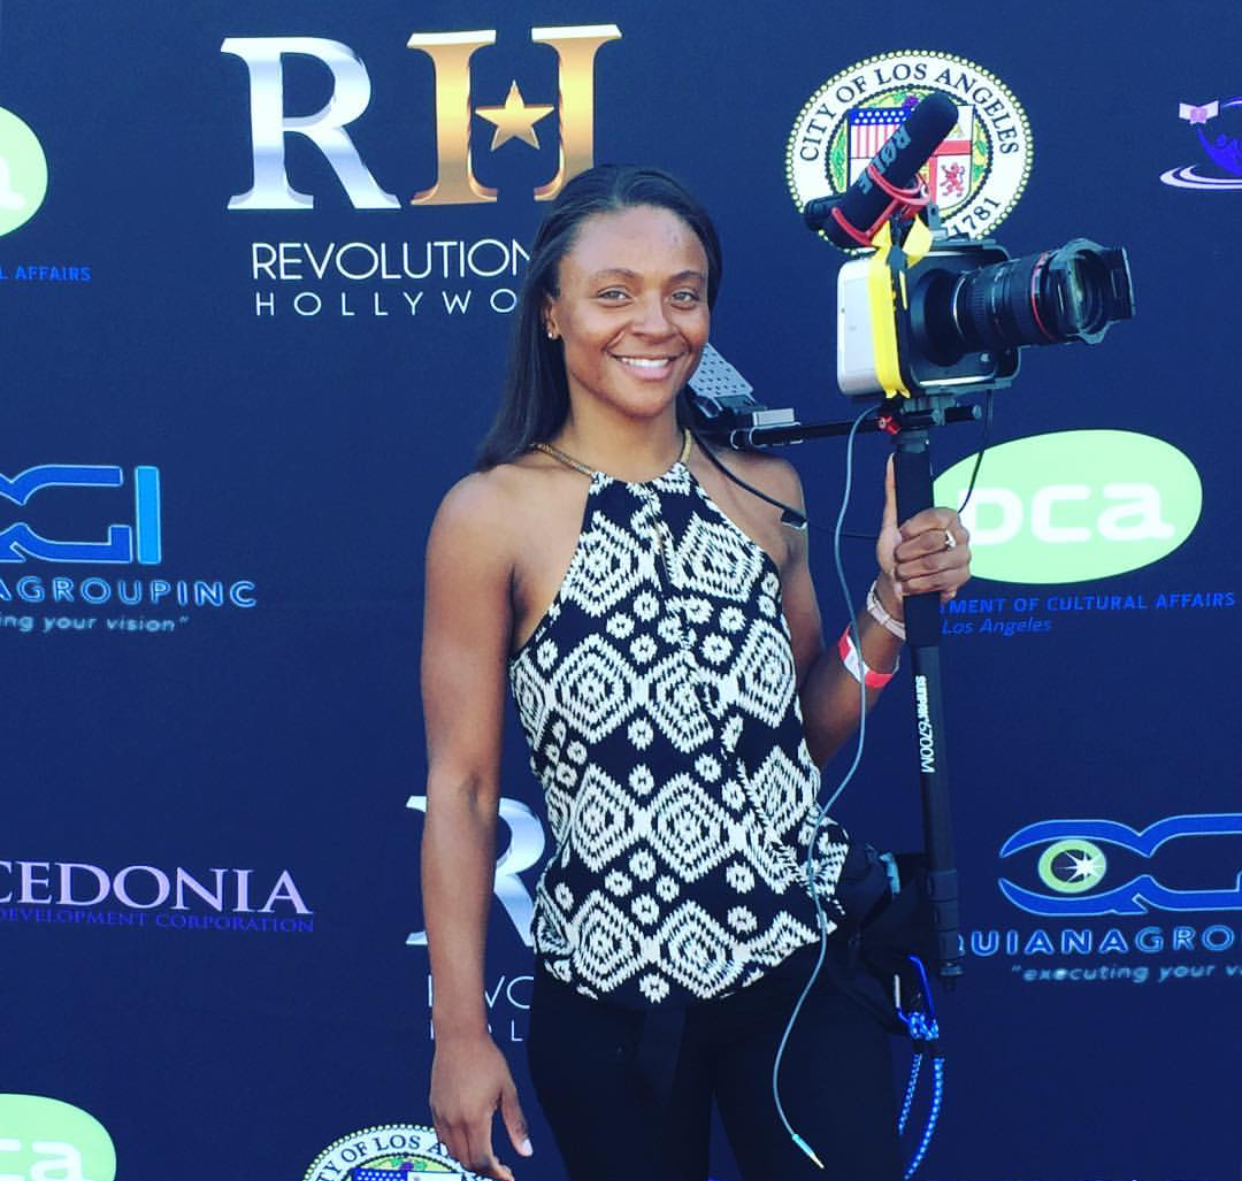 Doreen Pastures  Doreen is a producer, director, and videographer in Hollywood, California